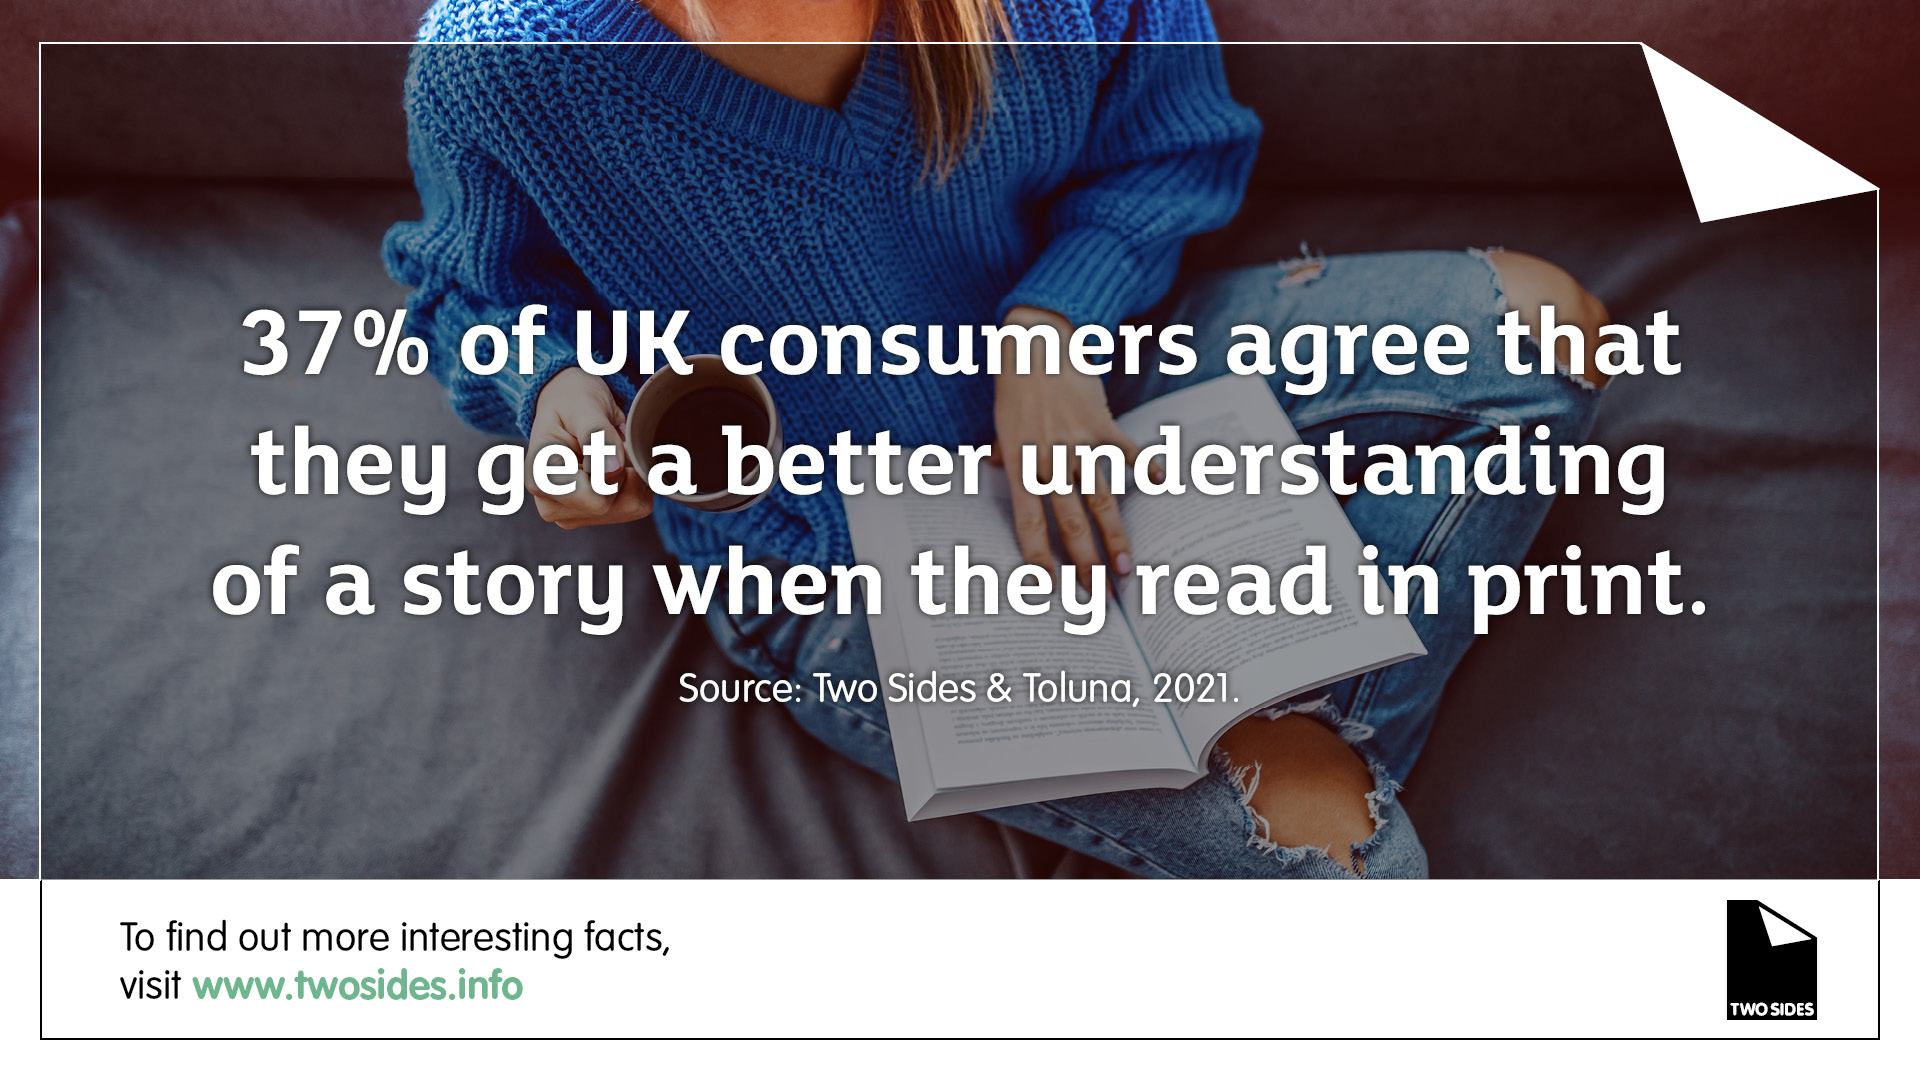 uk-consumers-get-a-better-understanding-of-the-story-in-print